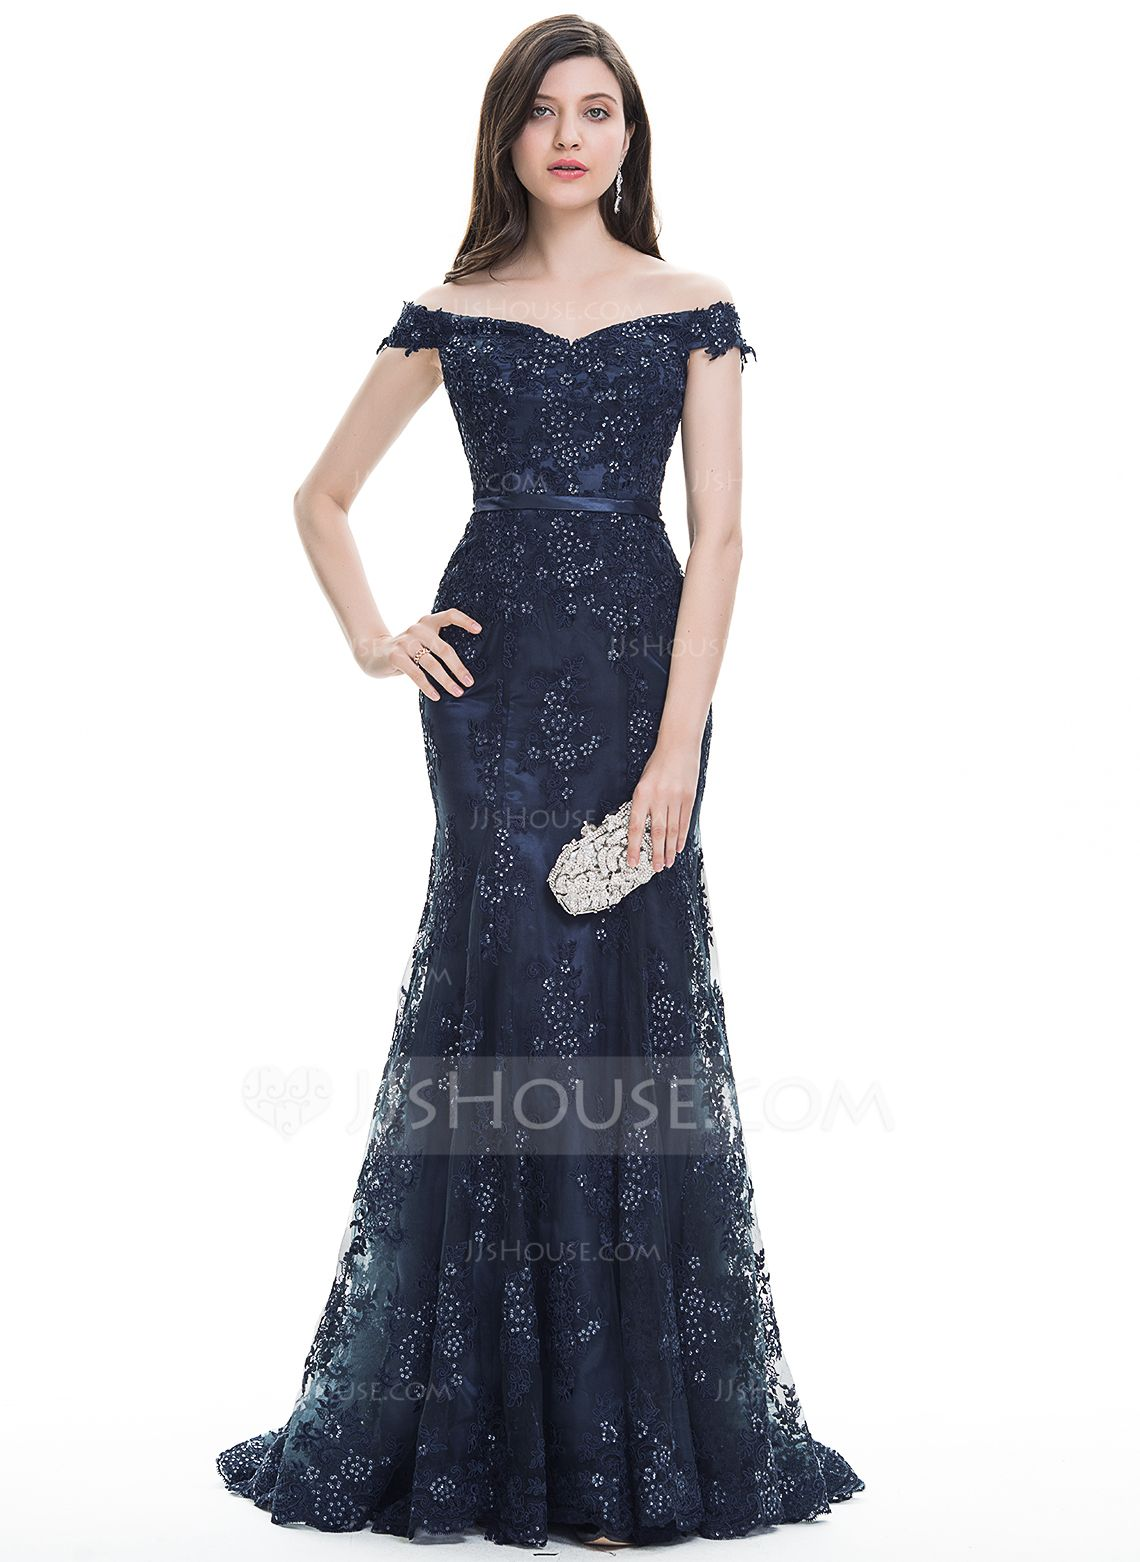 9a6b7d3a662 Trumpet Mermaid Off-the-Shoulder Sweep Train Tulle Lace Evening Dress With  Sequins (017105914) - Evening Dresses - JJsHouse